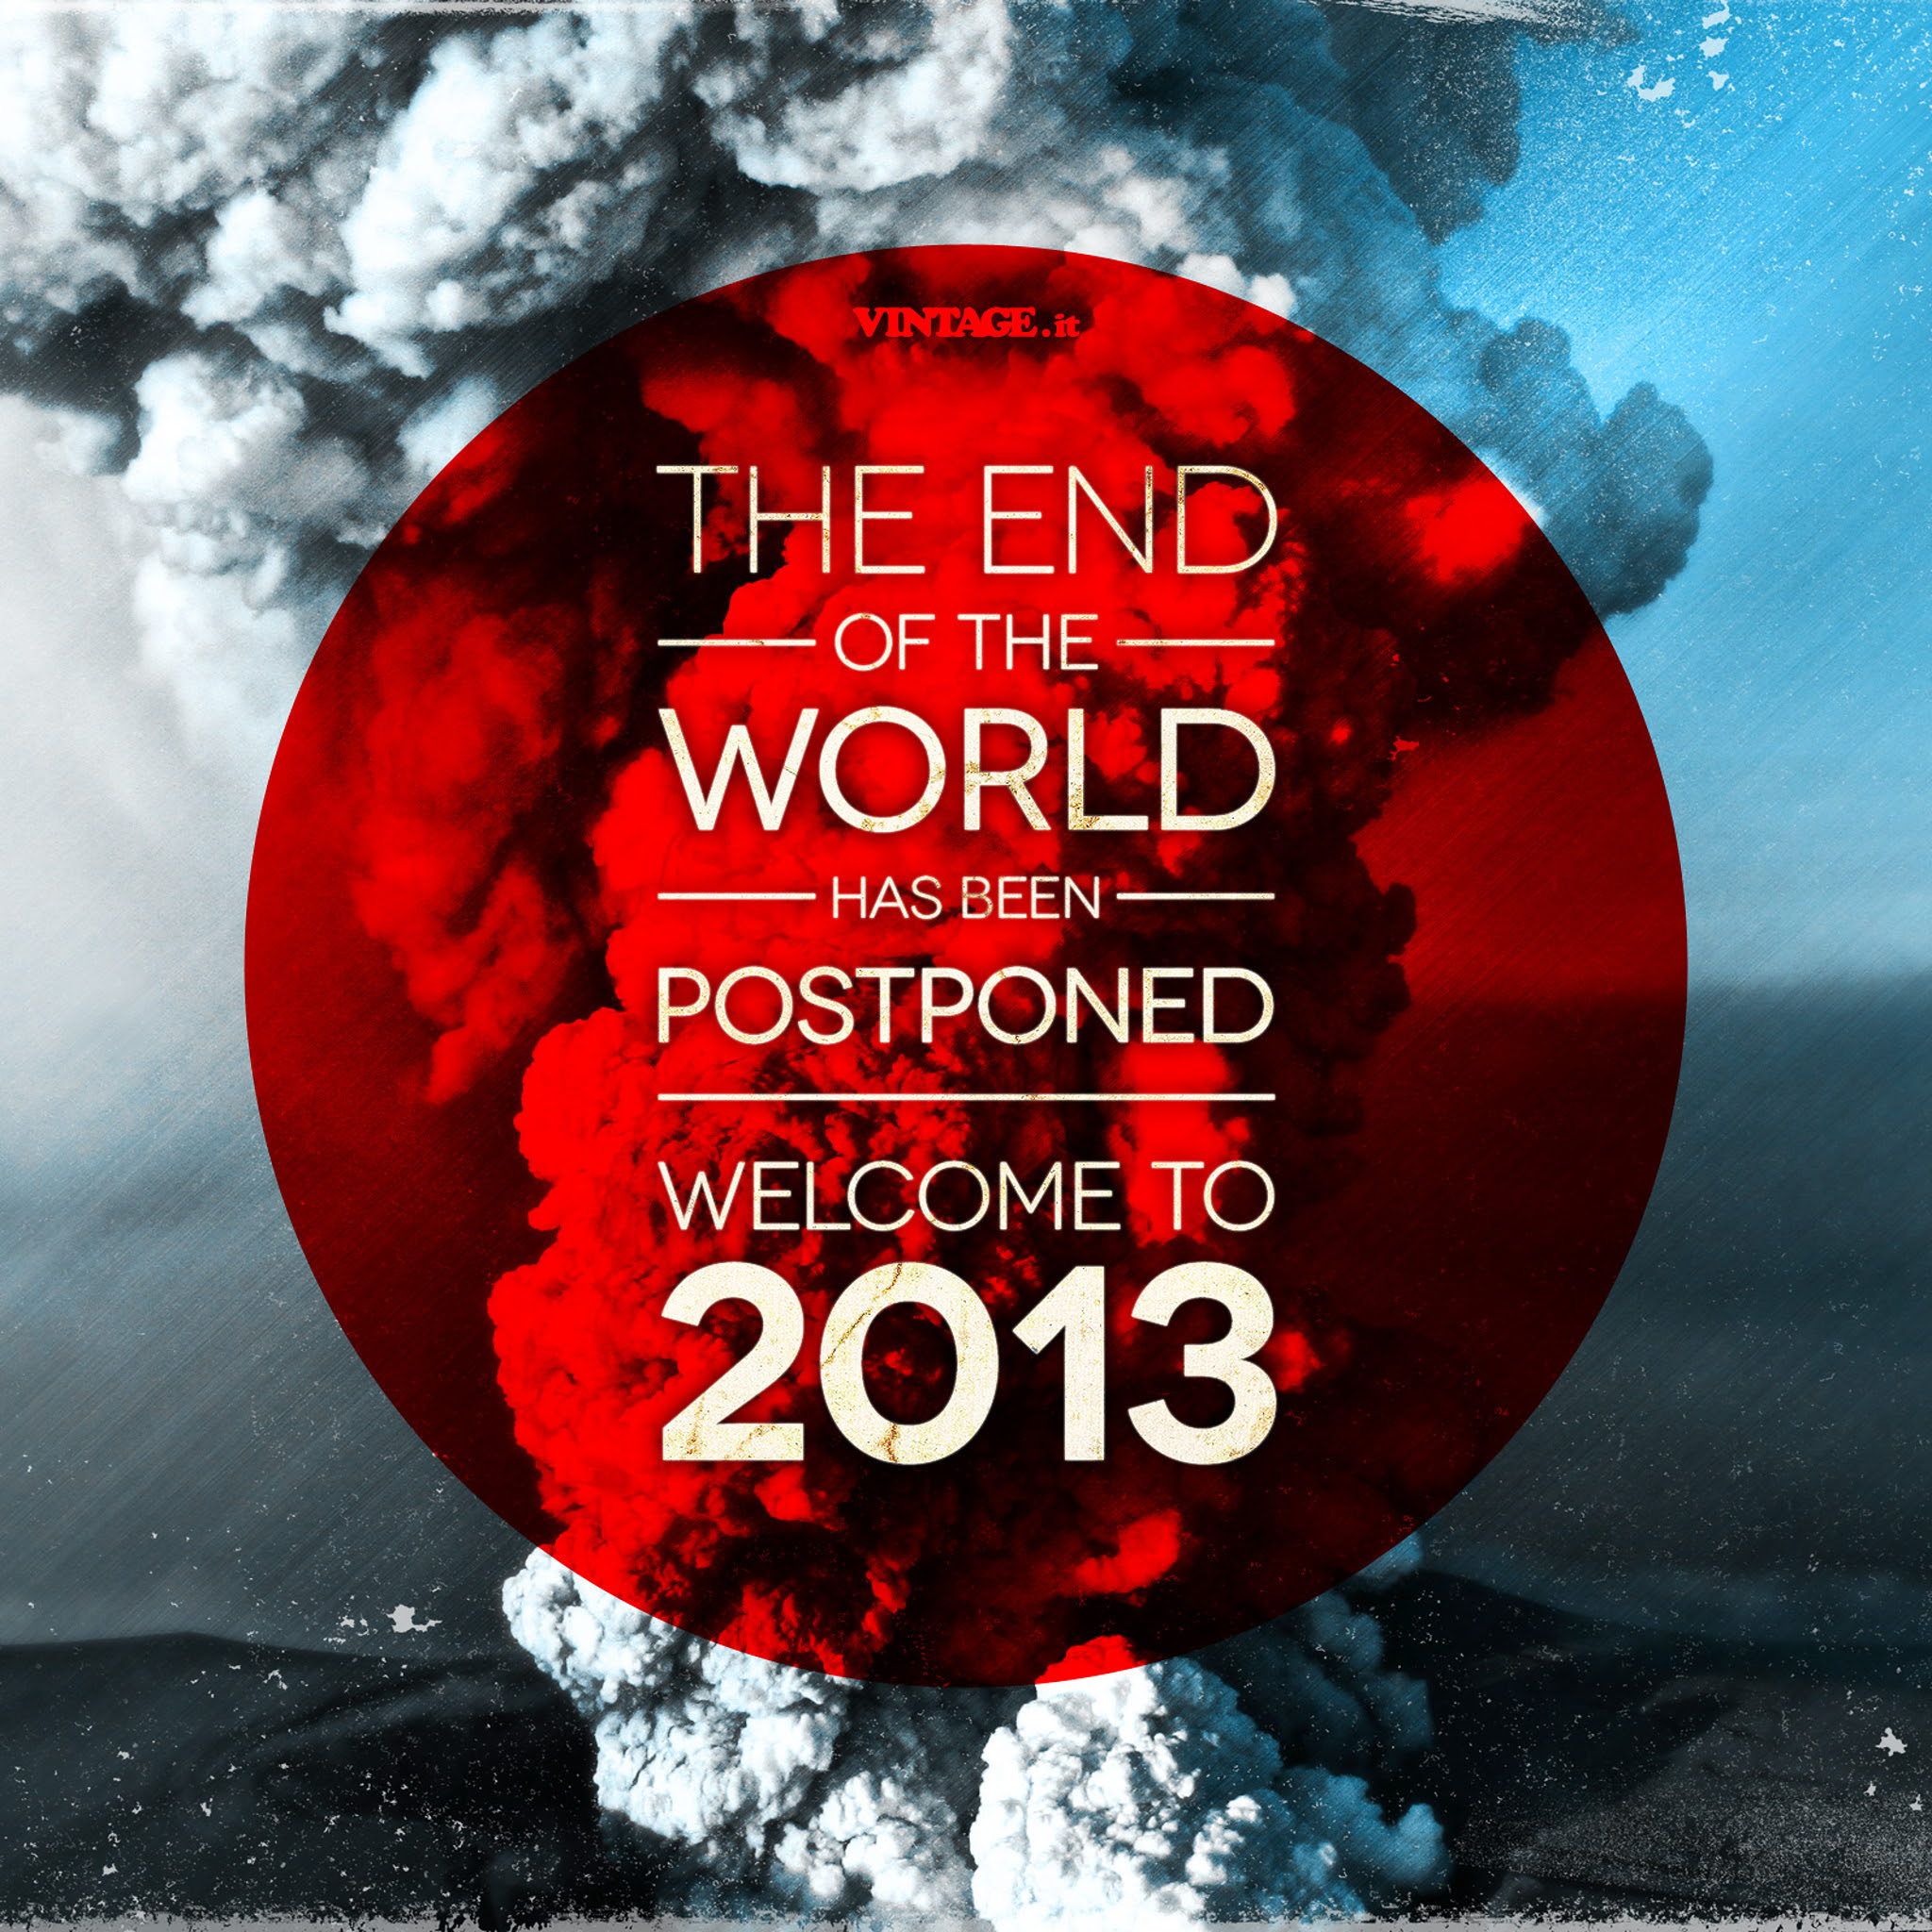 The End Of The World Wallpaper Free Desktop Hd Ipad Iphone